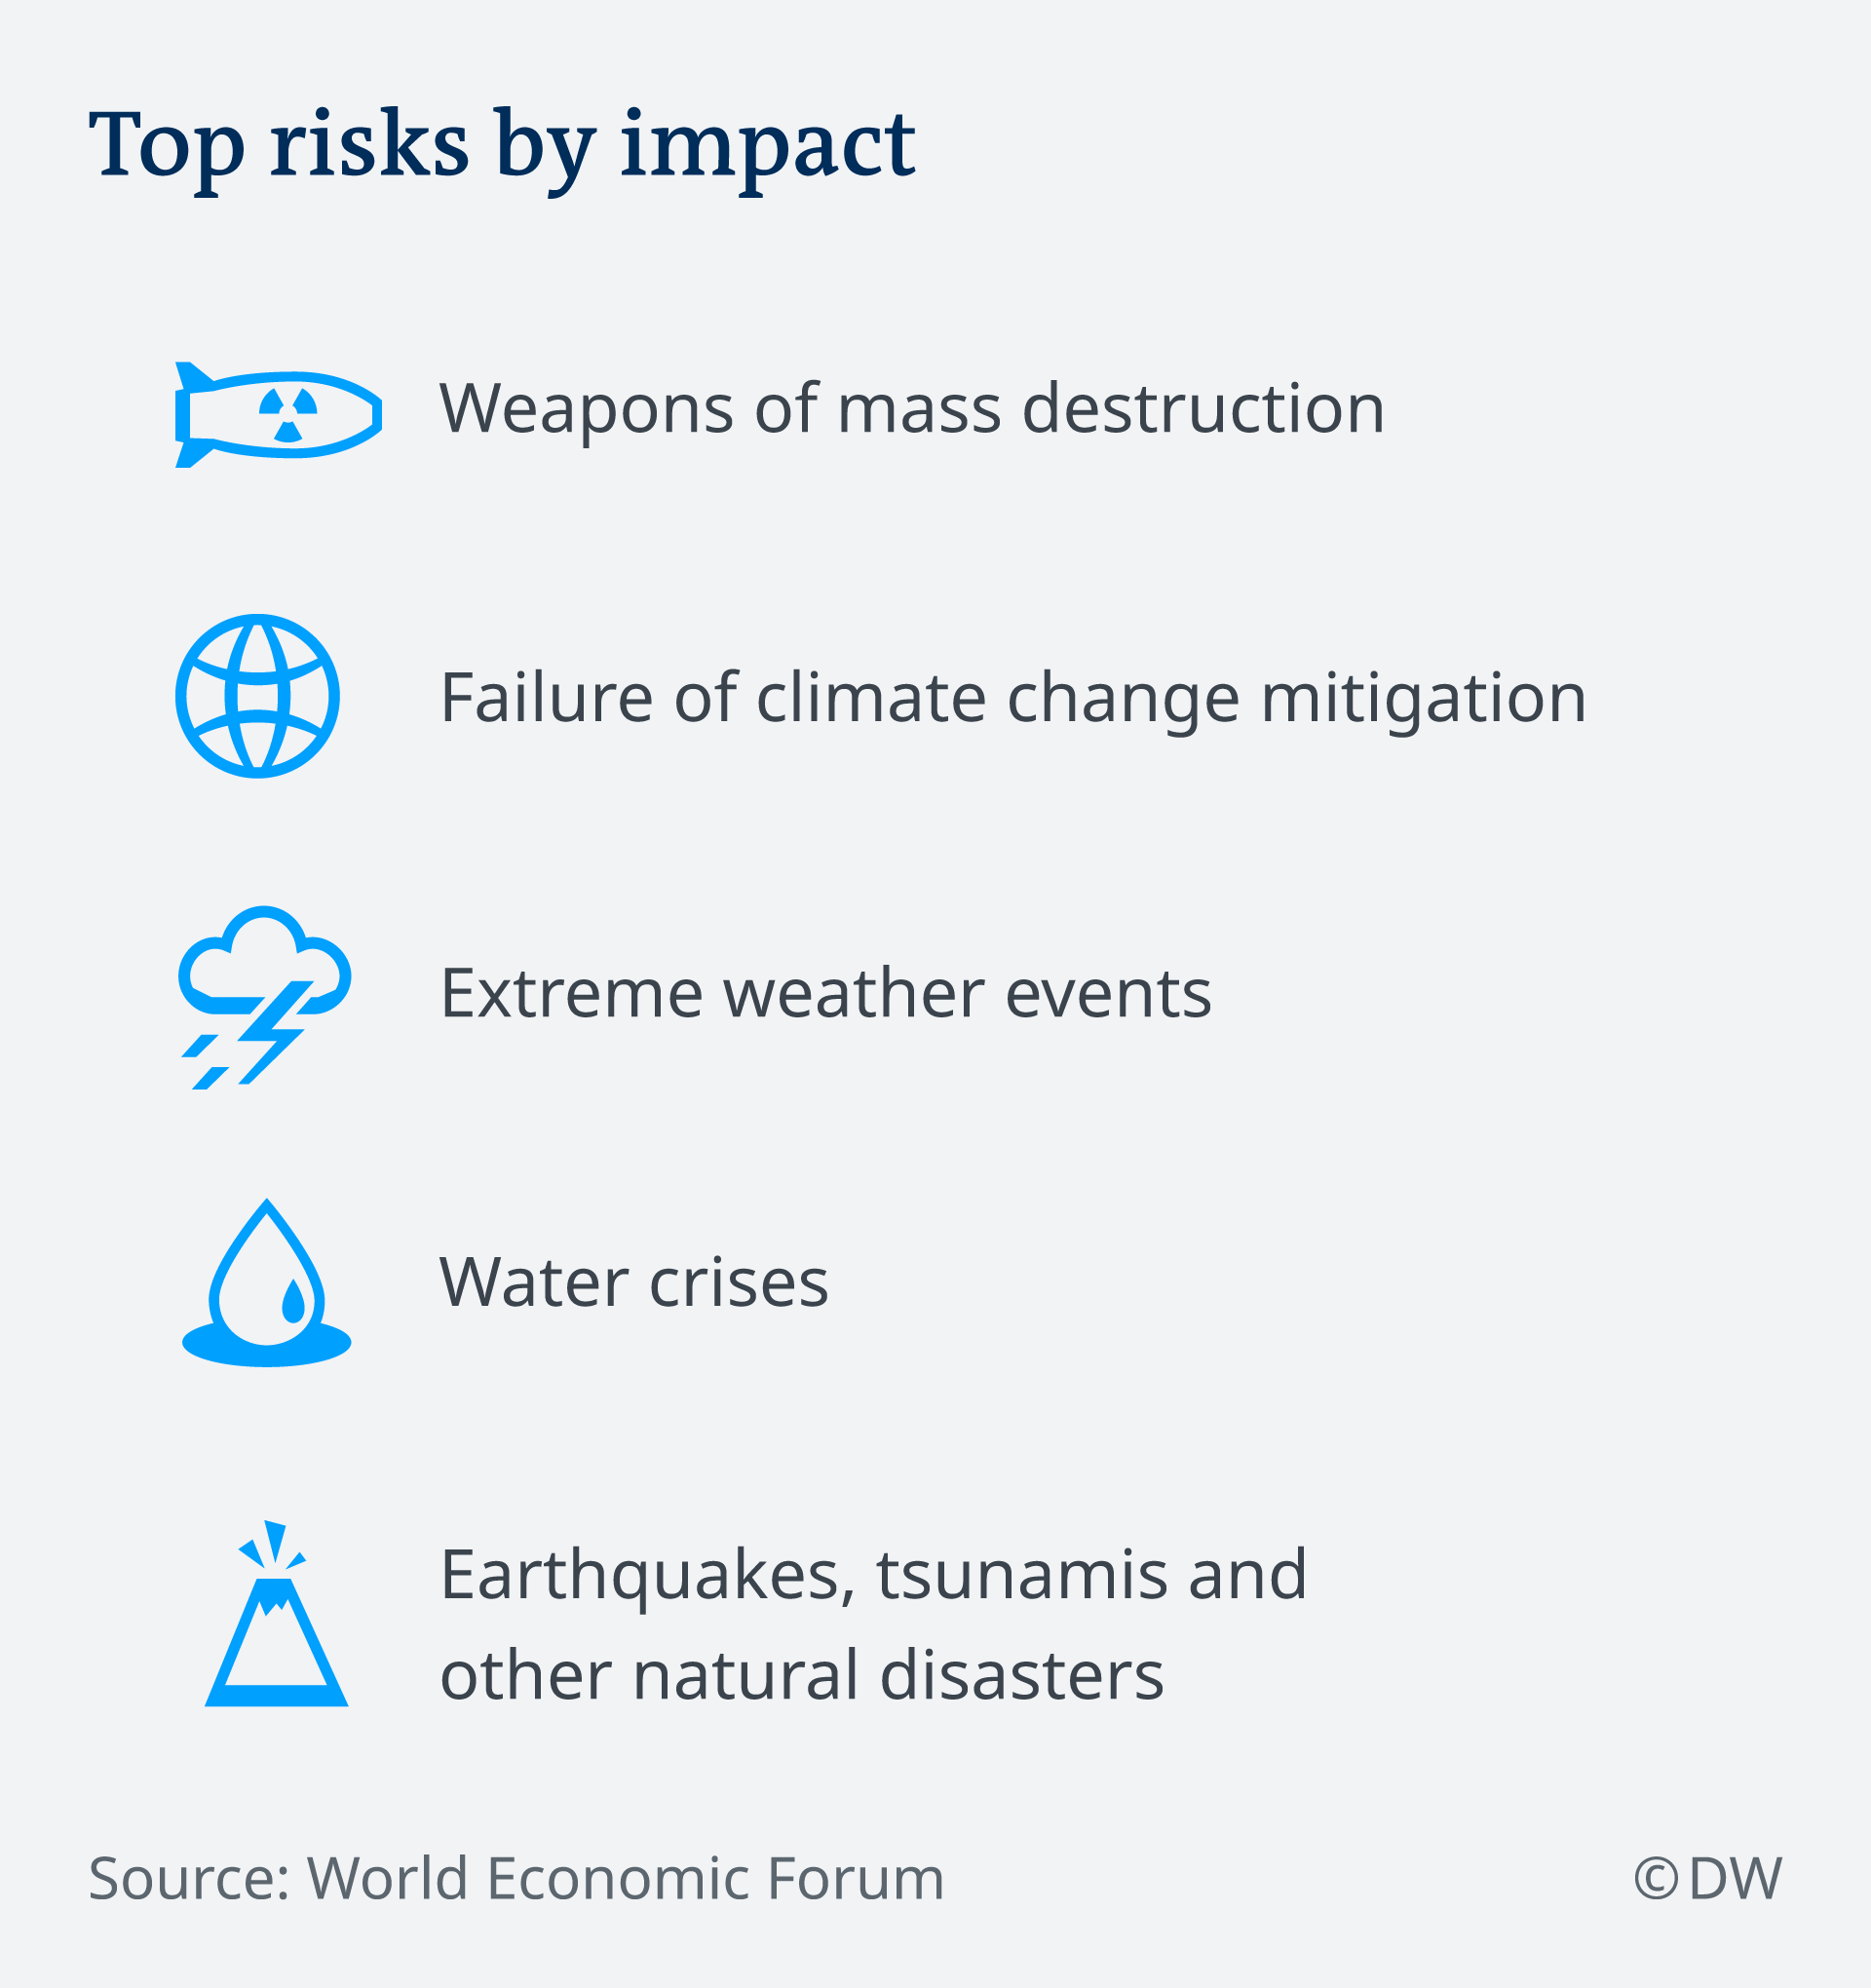 Top risks facing mankind